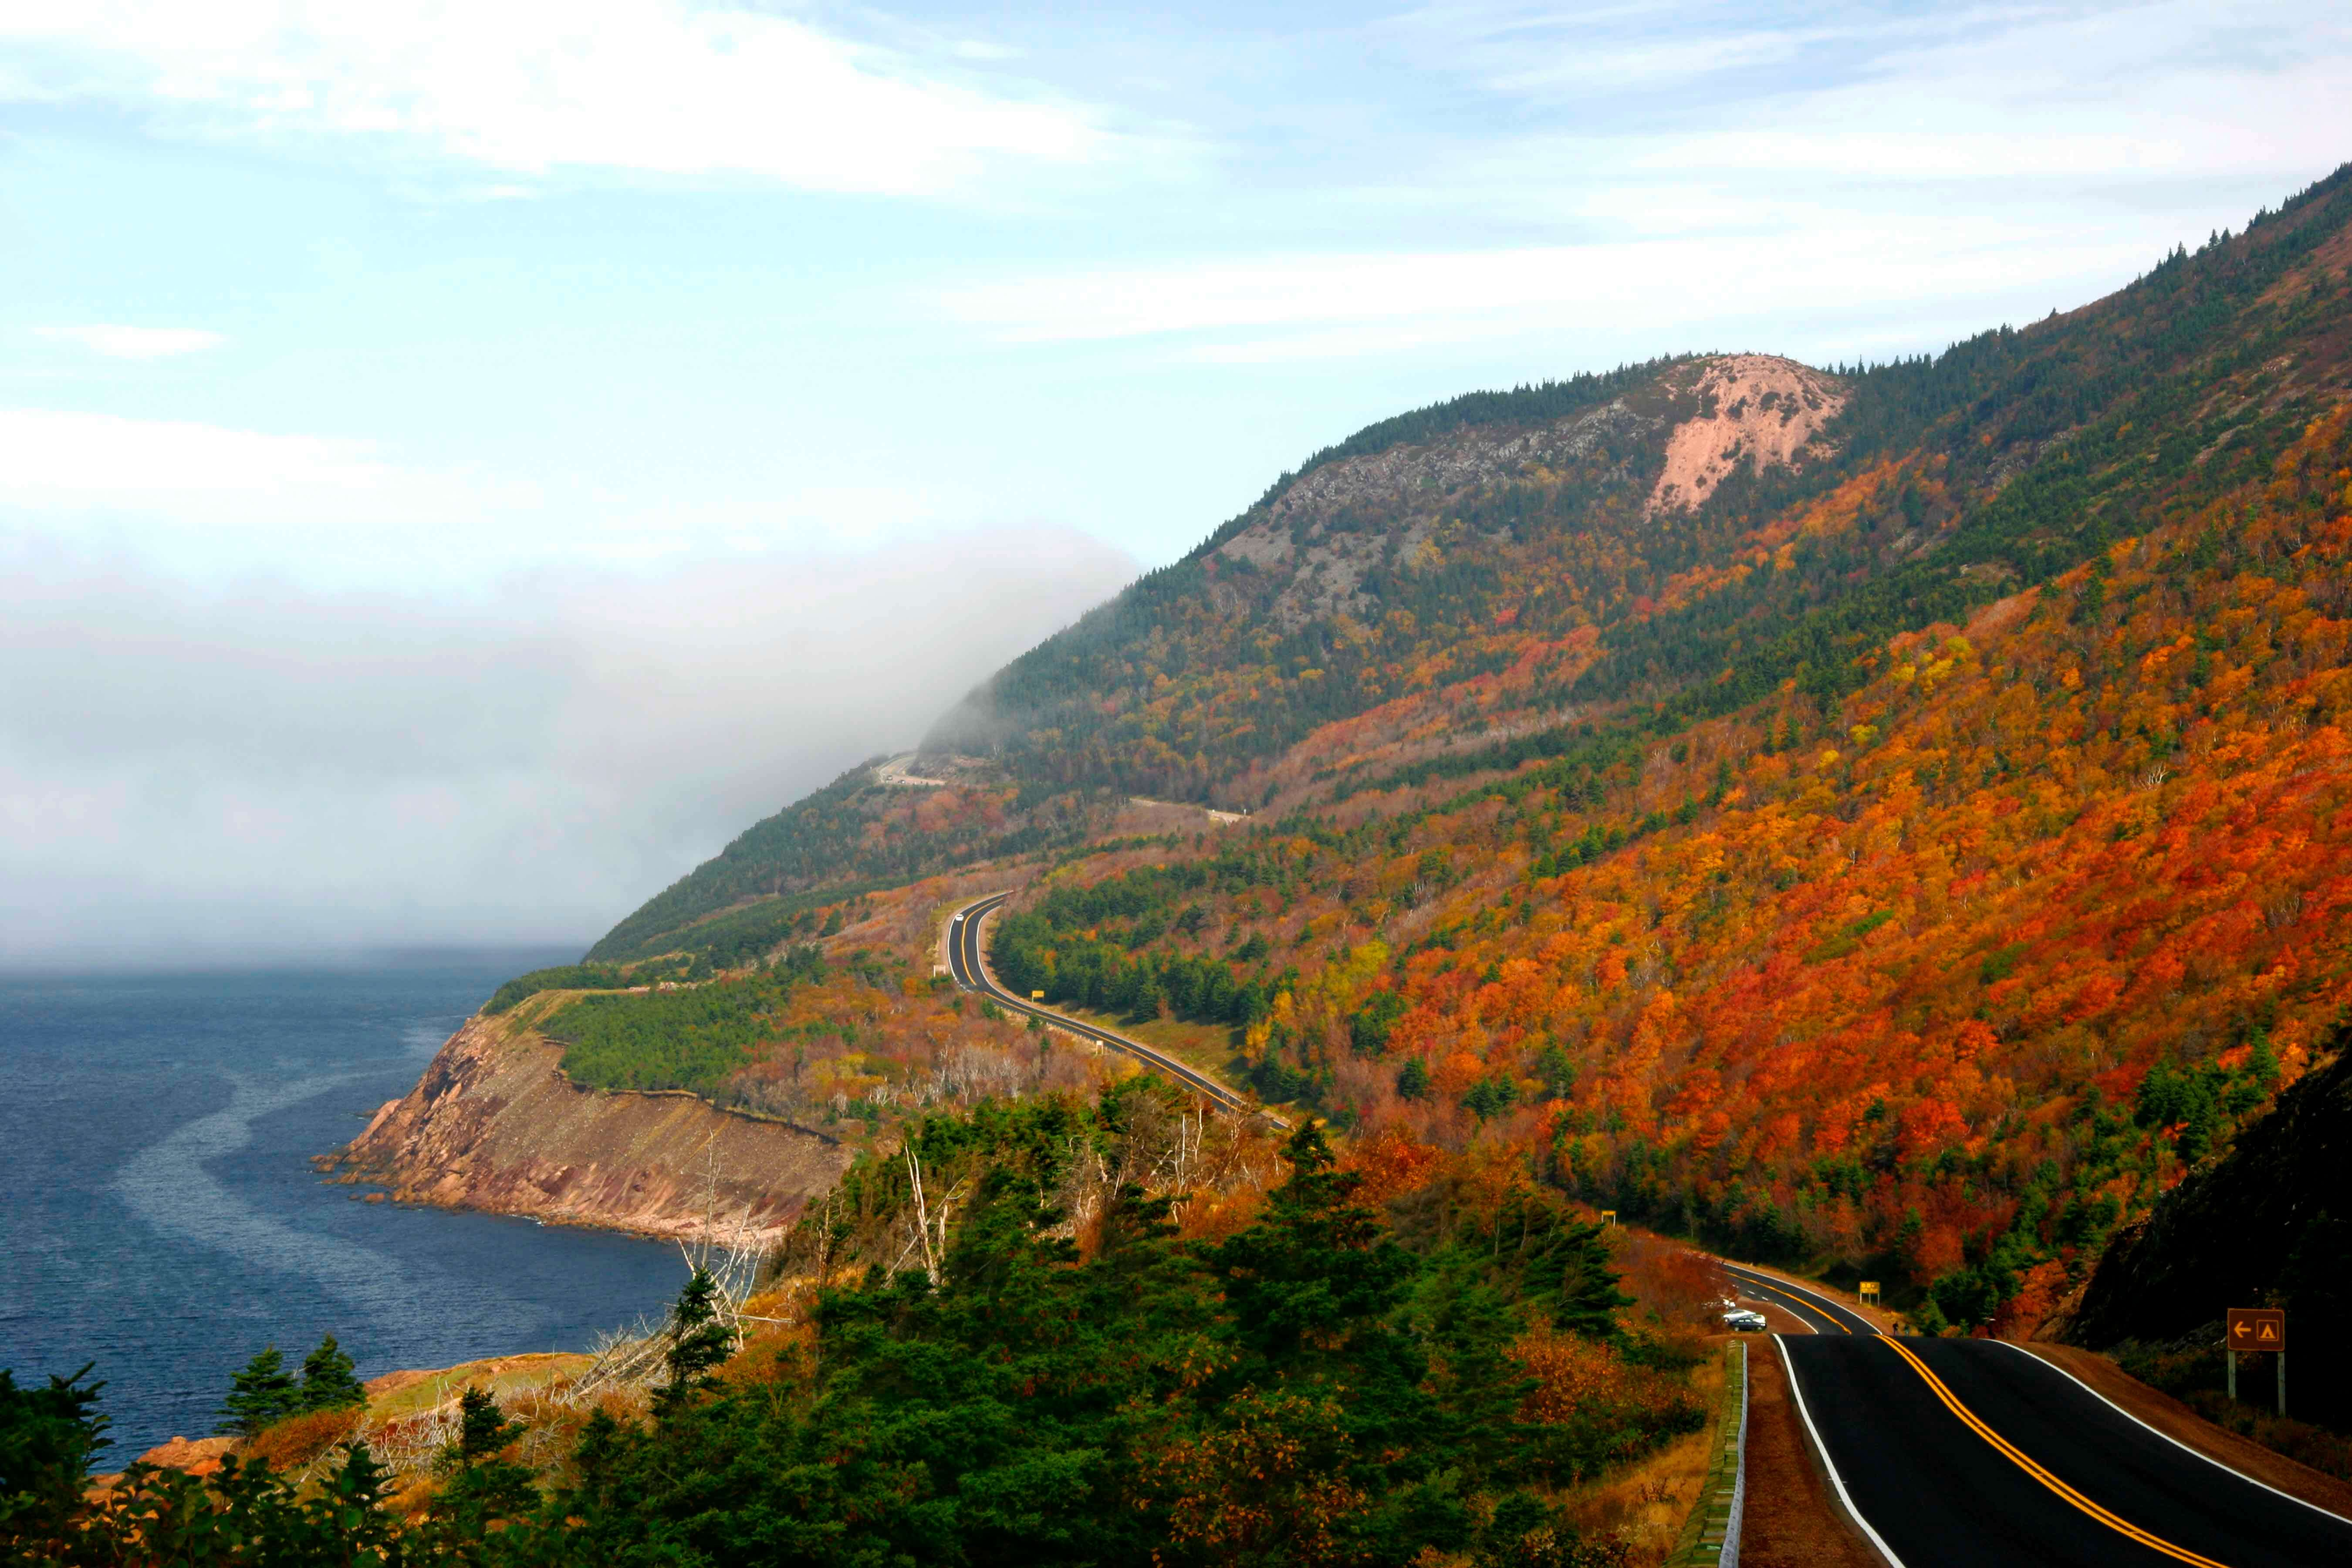 Glorious autumn colours on the winding roads of Cape Breton's Cabot Trail.